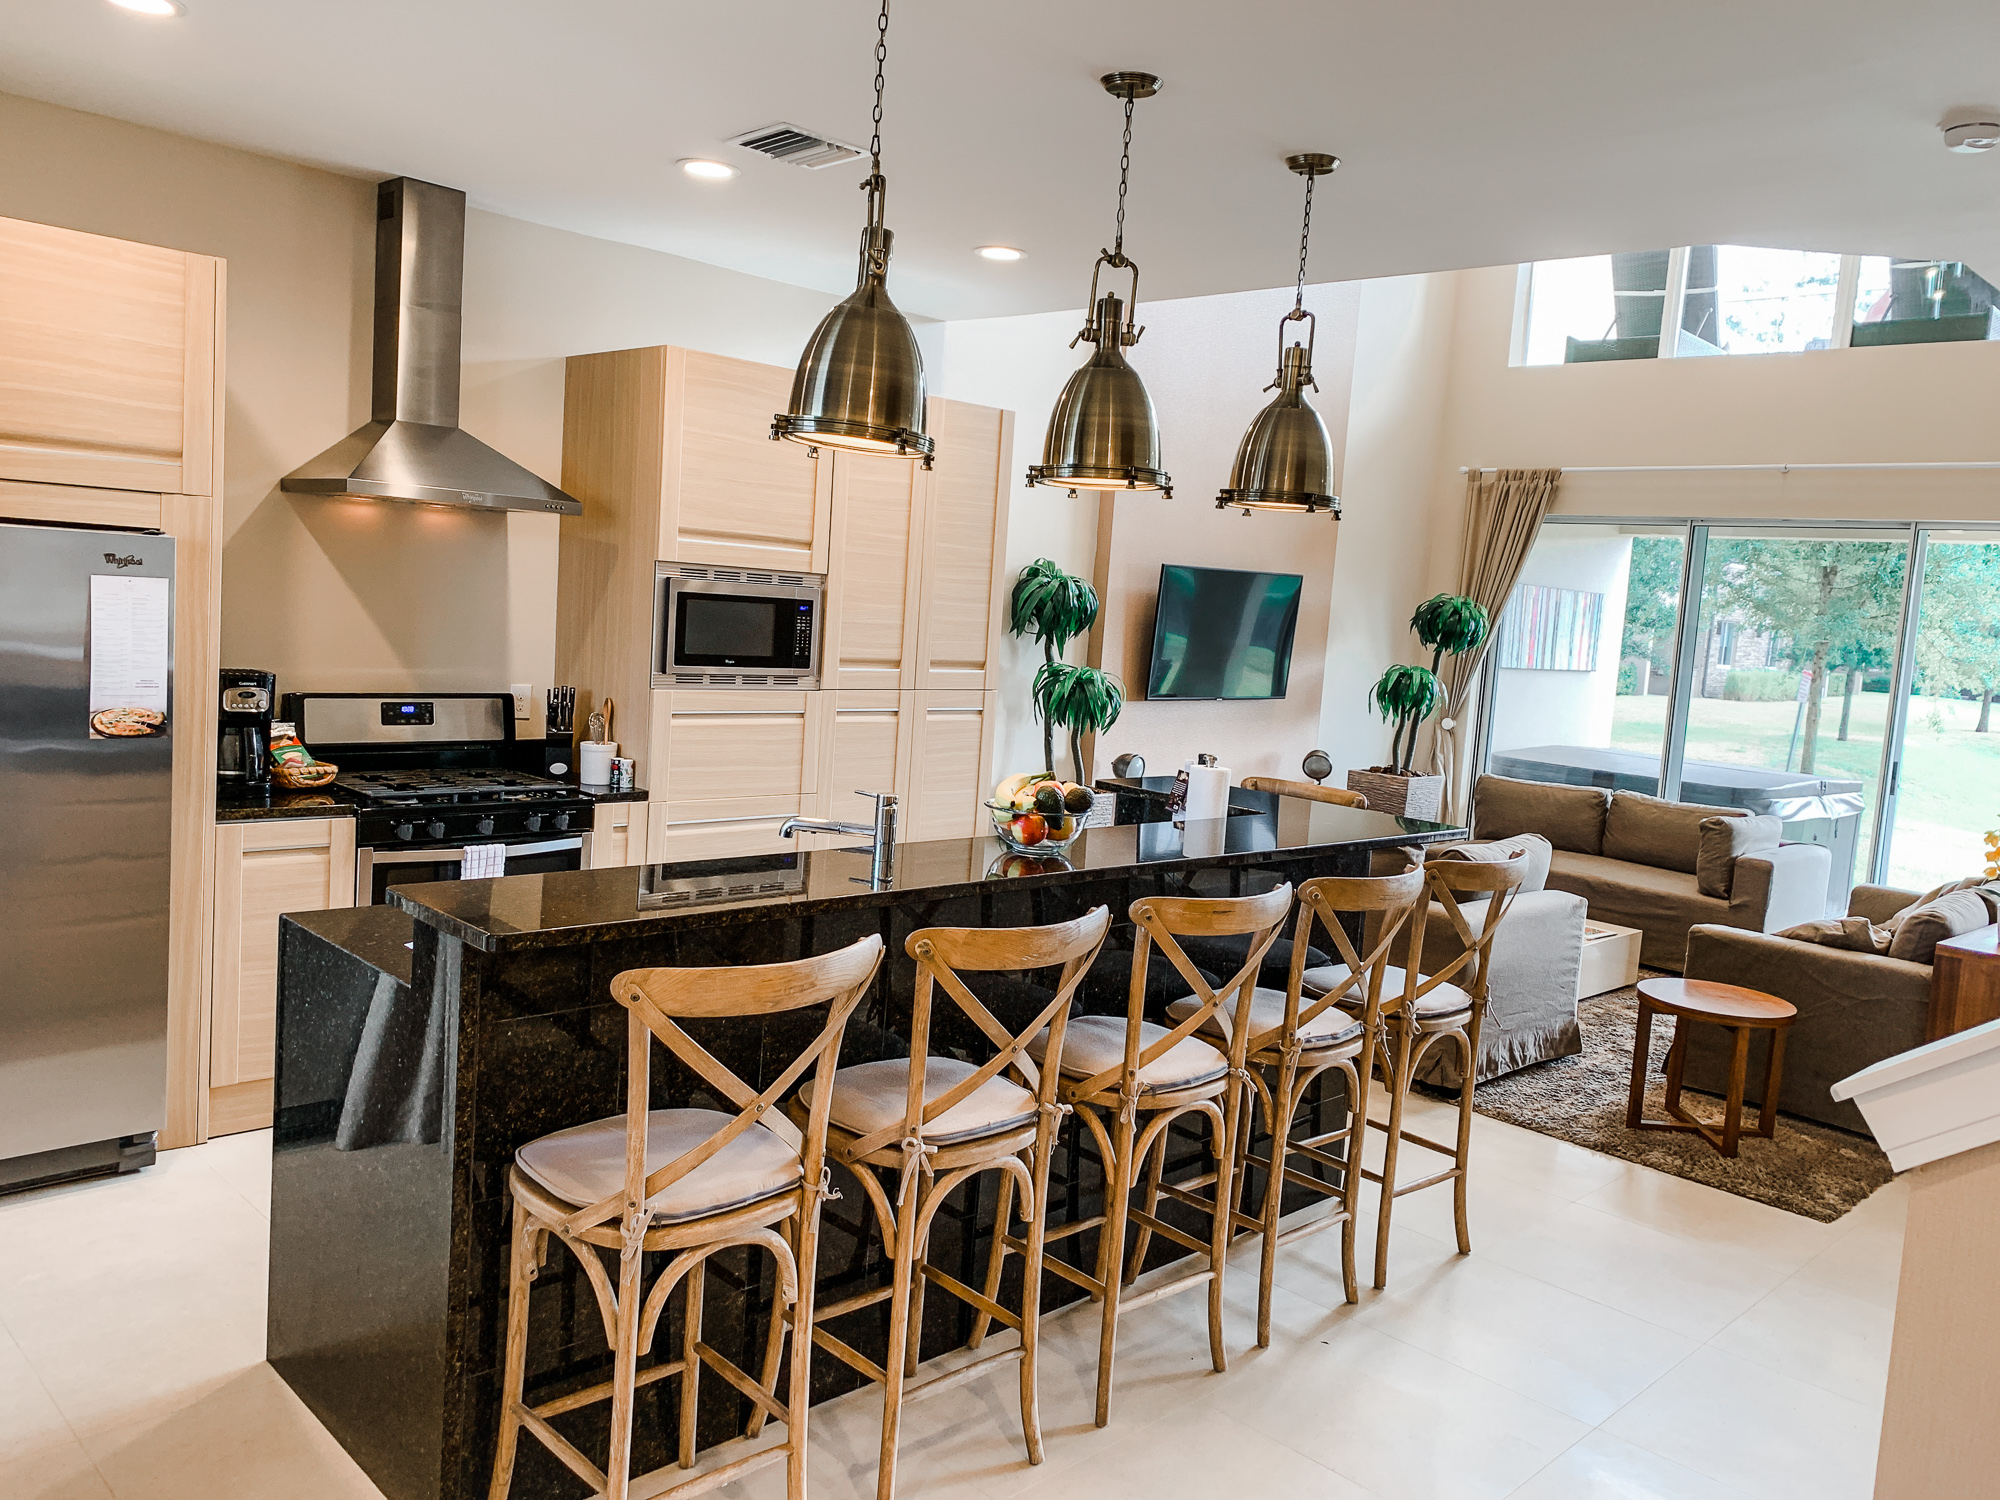 Modern kitchen at Magic Village Vacation Homes in Kissimmee, FL